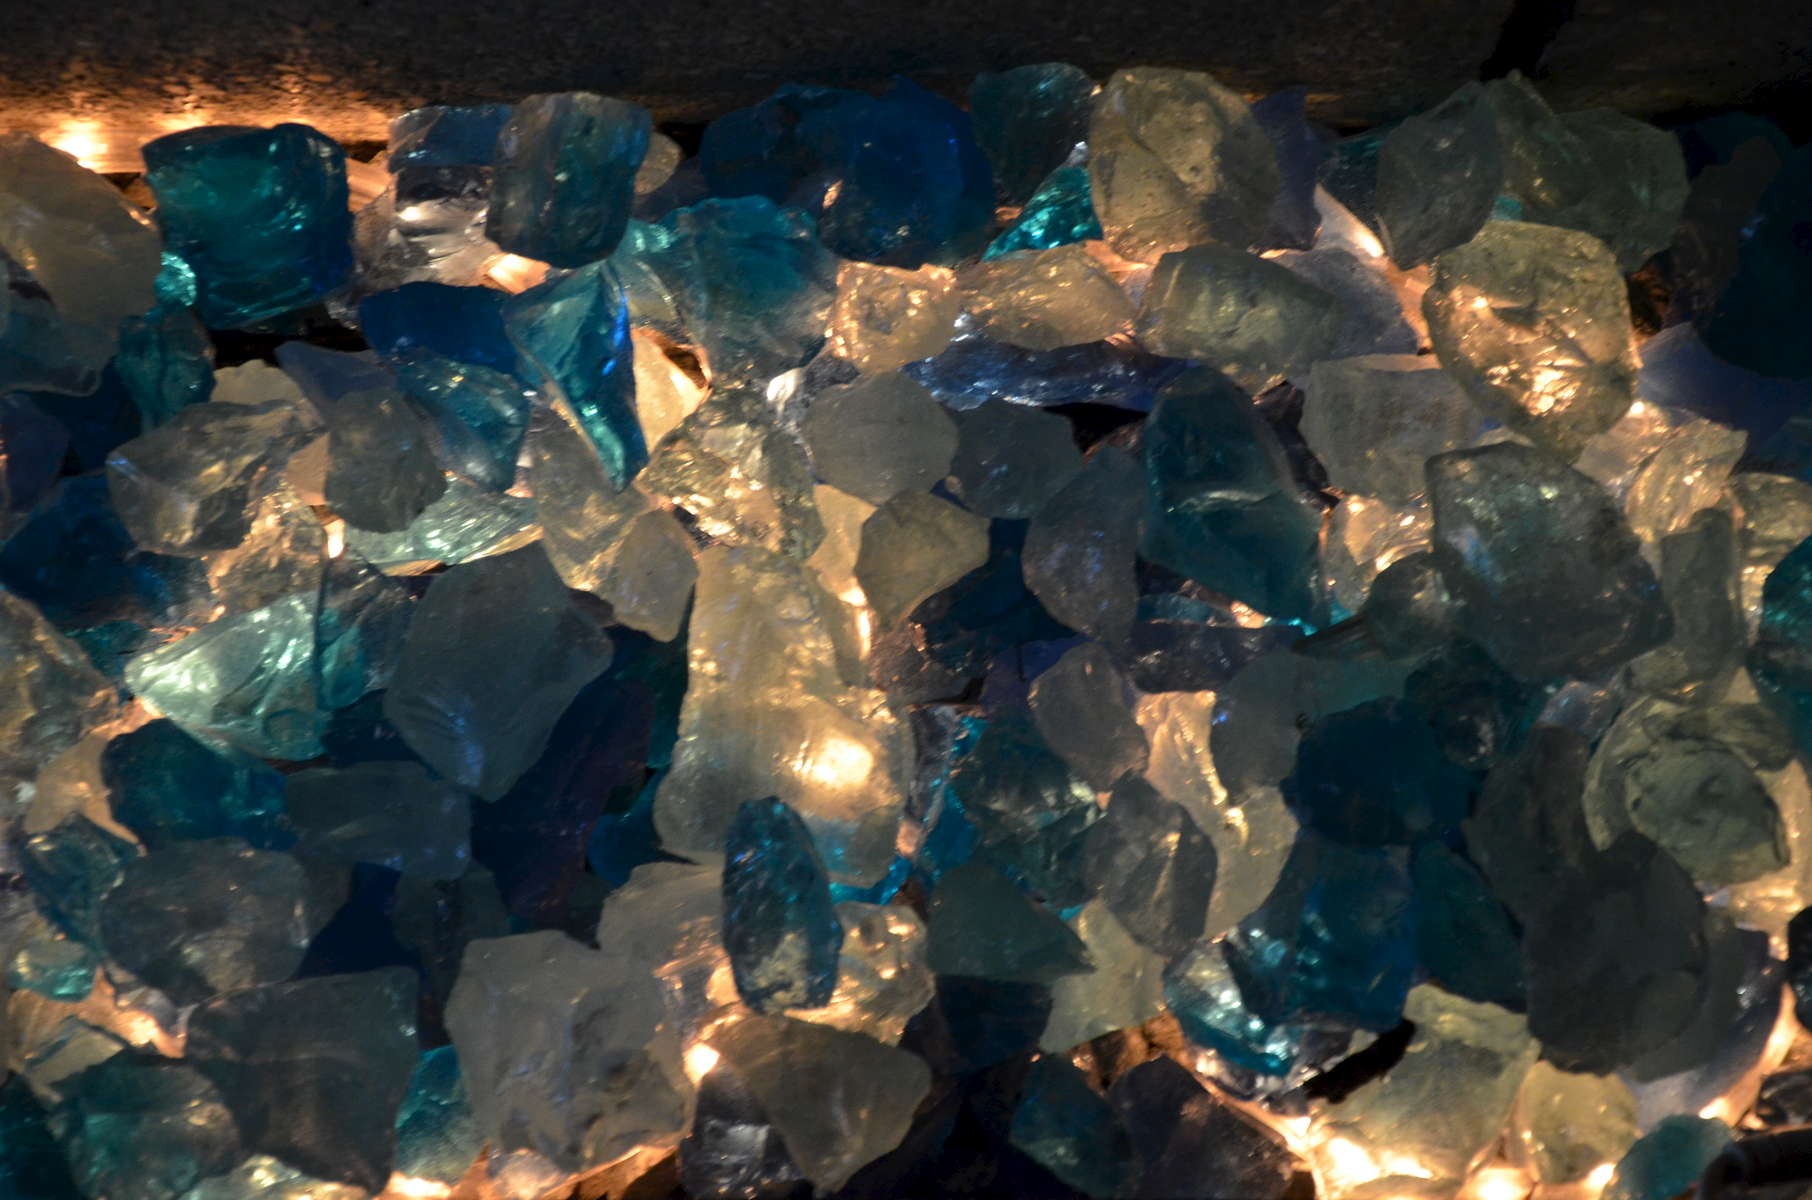 ...the blue glass block is creatively illuminated from underneath to increase the appeal of this unique landscape feature in the evening!